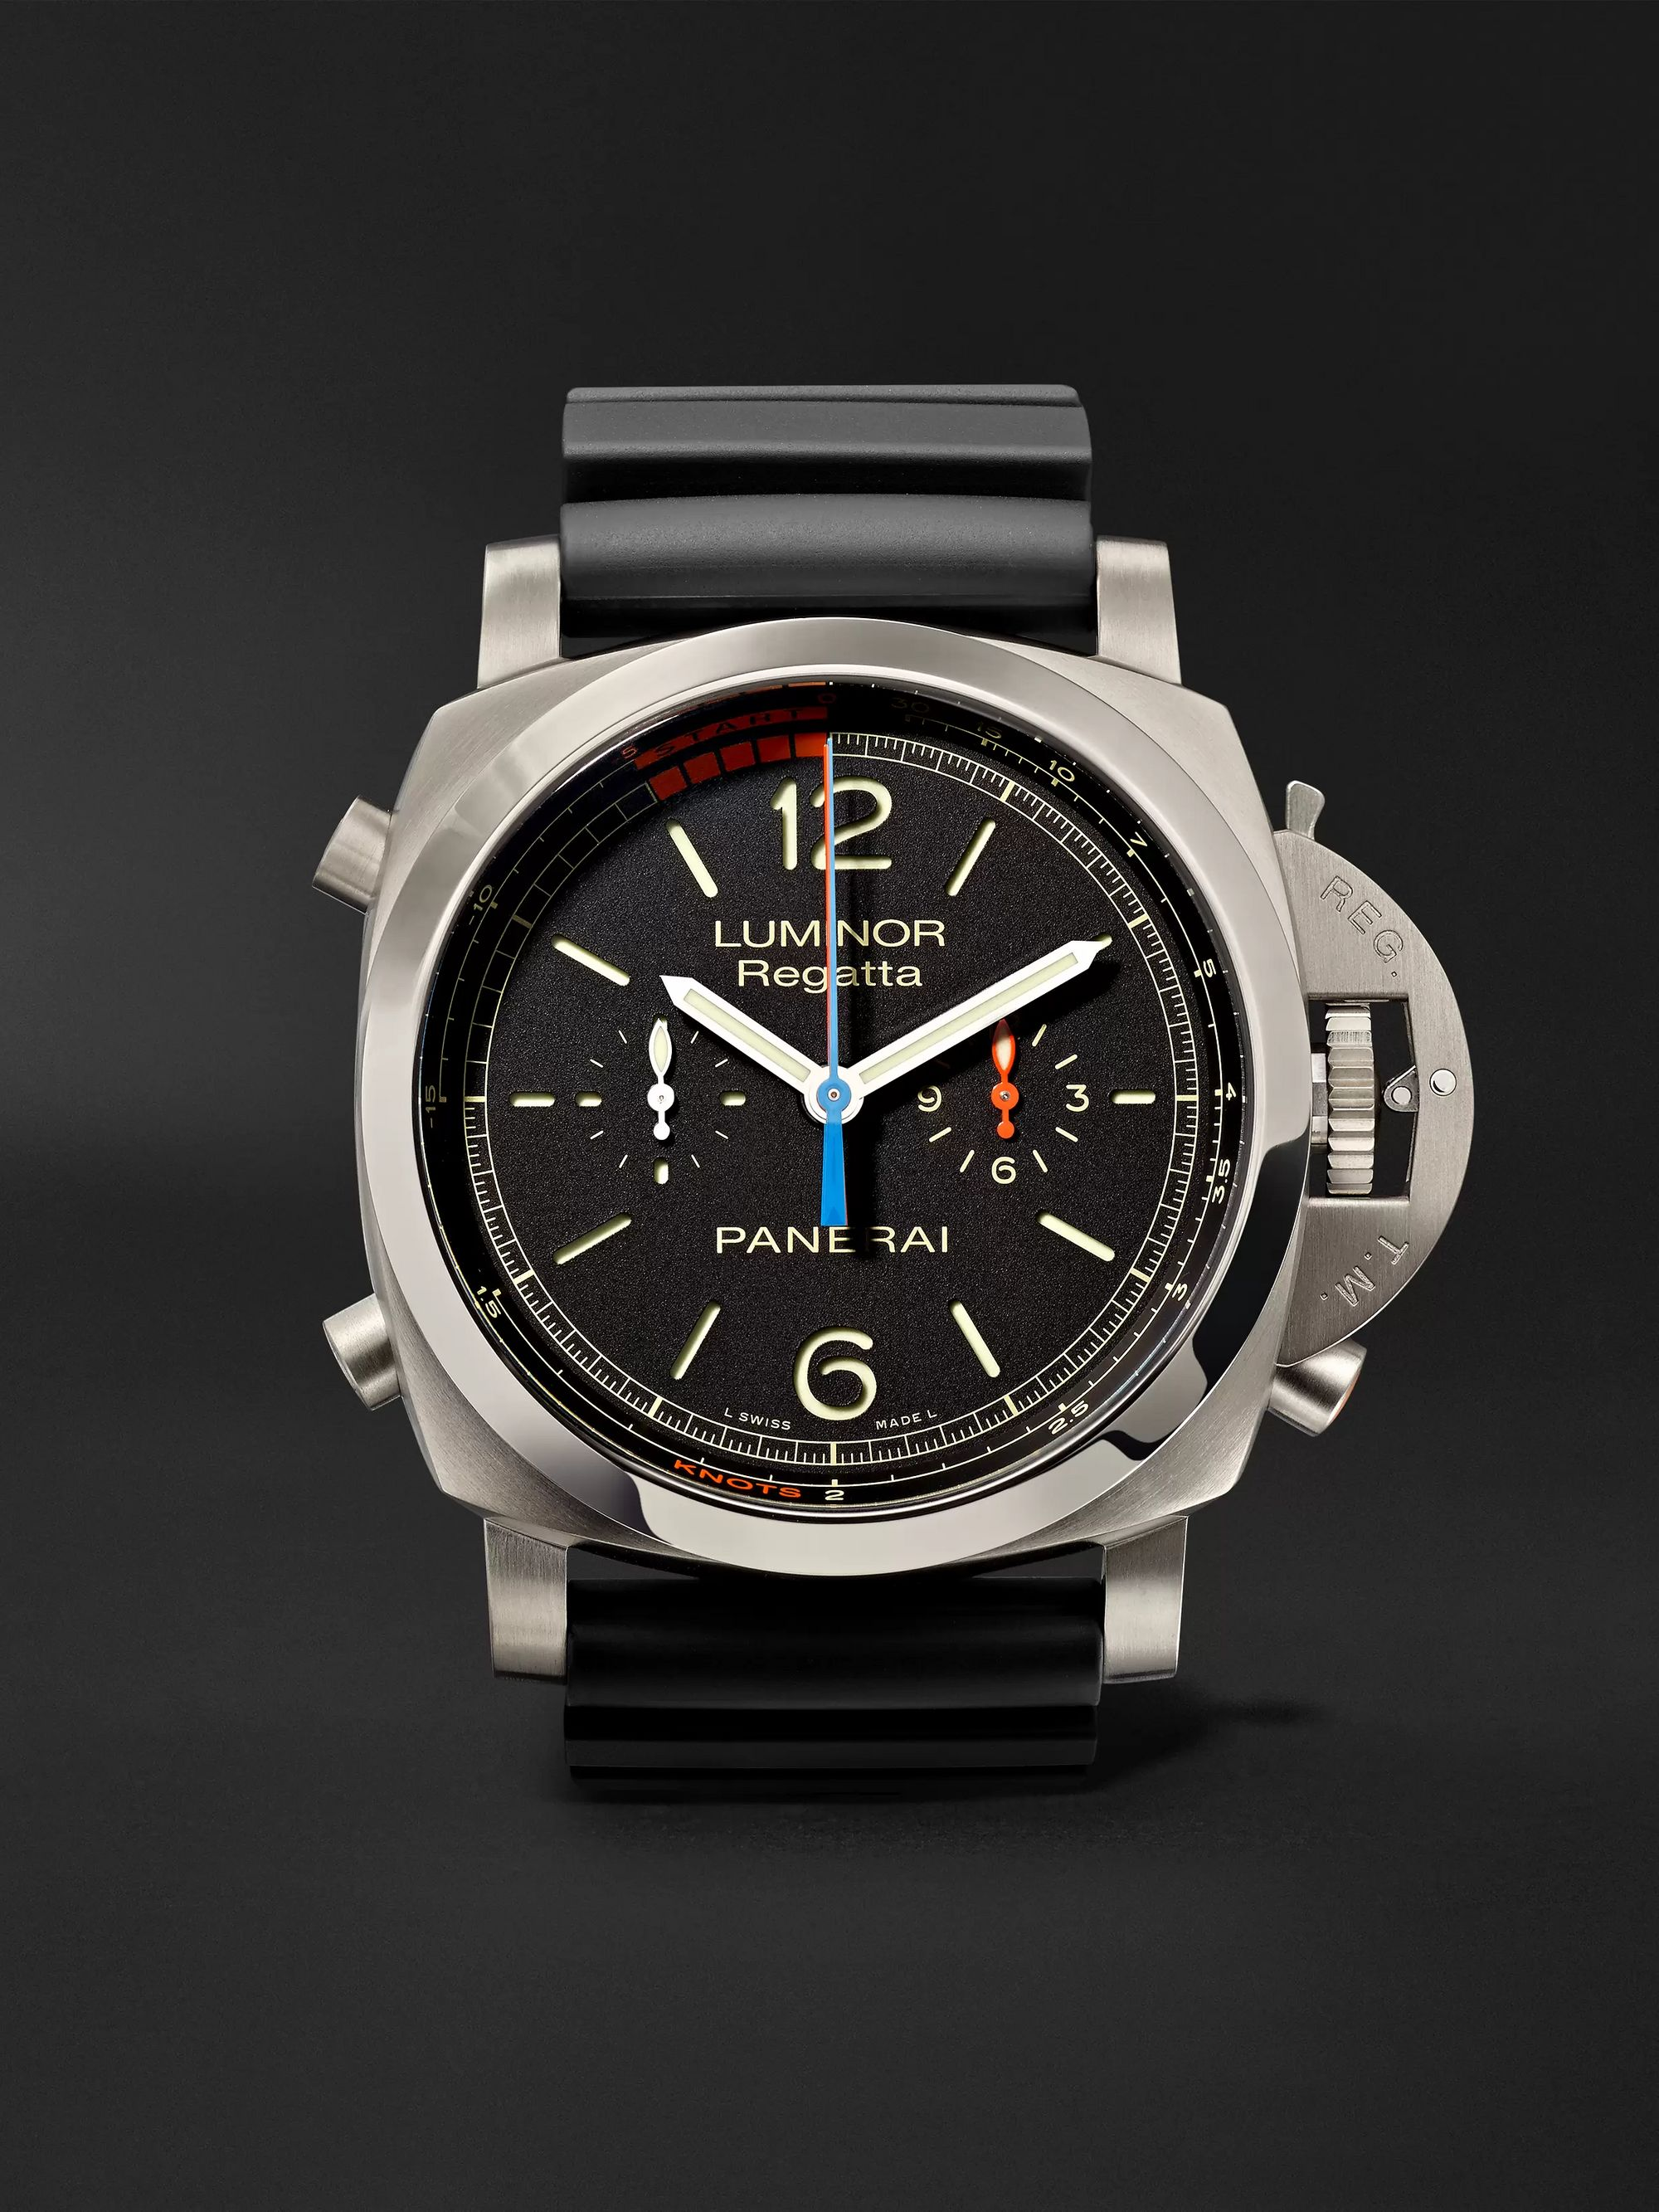 Panerai Luminor 1950 Regatta 3 Days Chrono Flyback Automatic Titanio 47mm Titanium and Rubber Watch, Ref. No. PAM00526